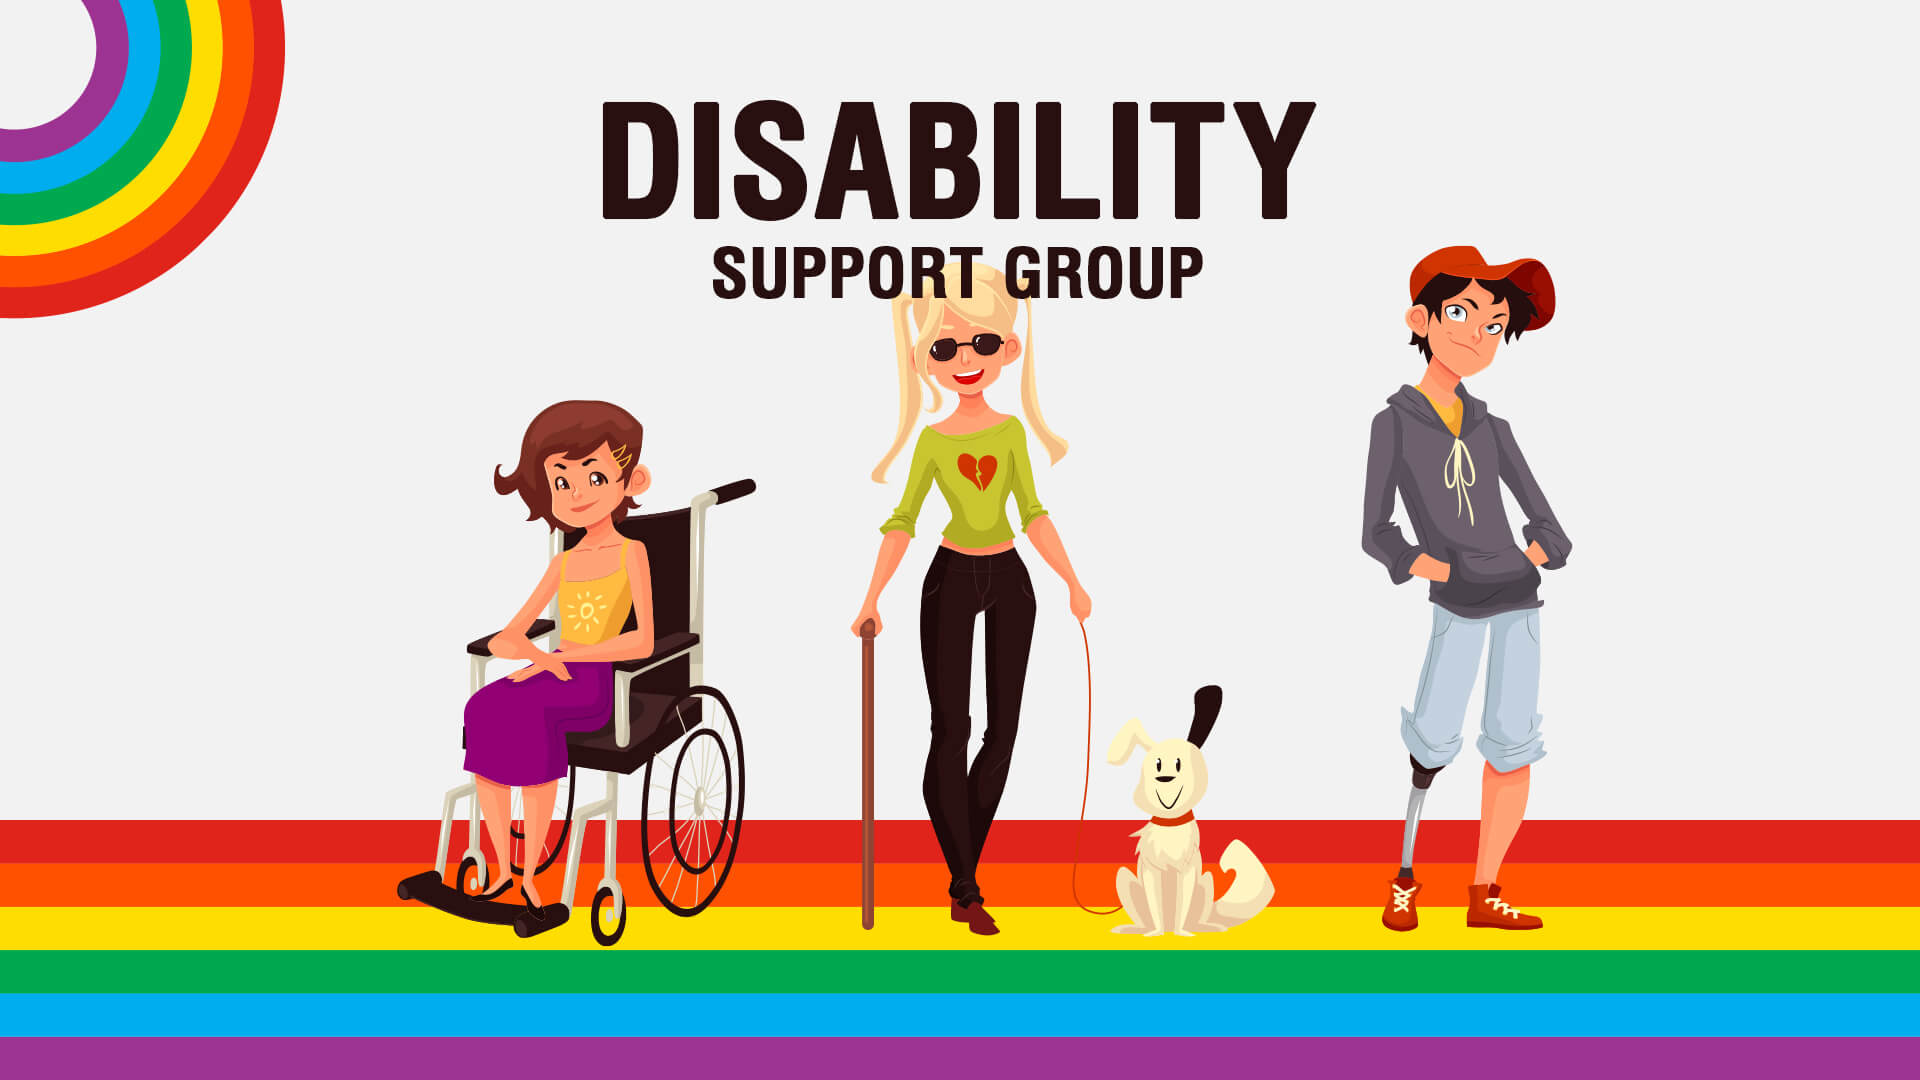 Disability Support Group for Youth